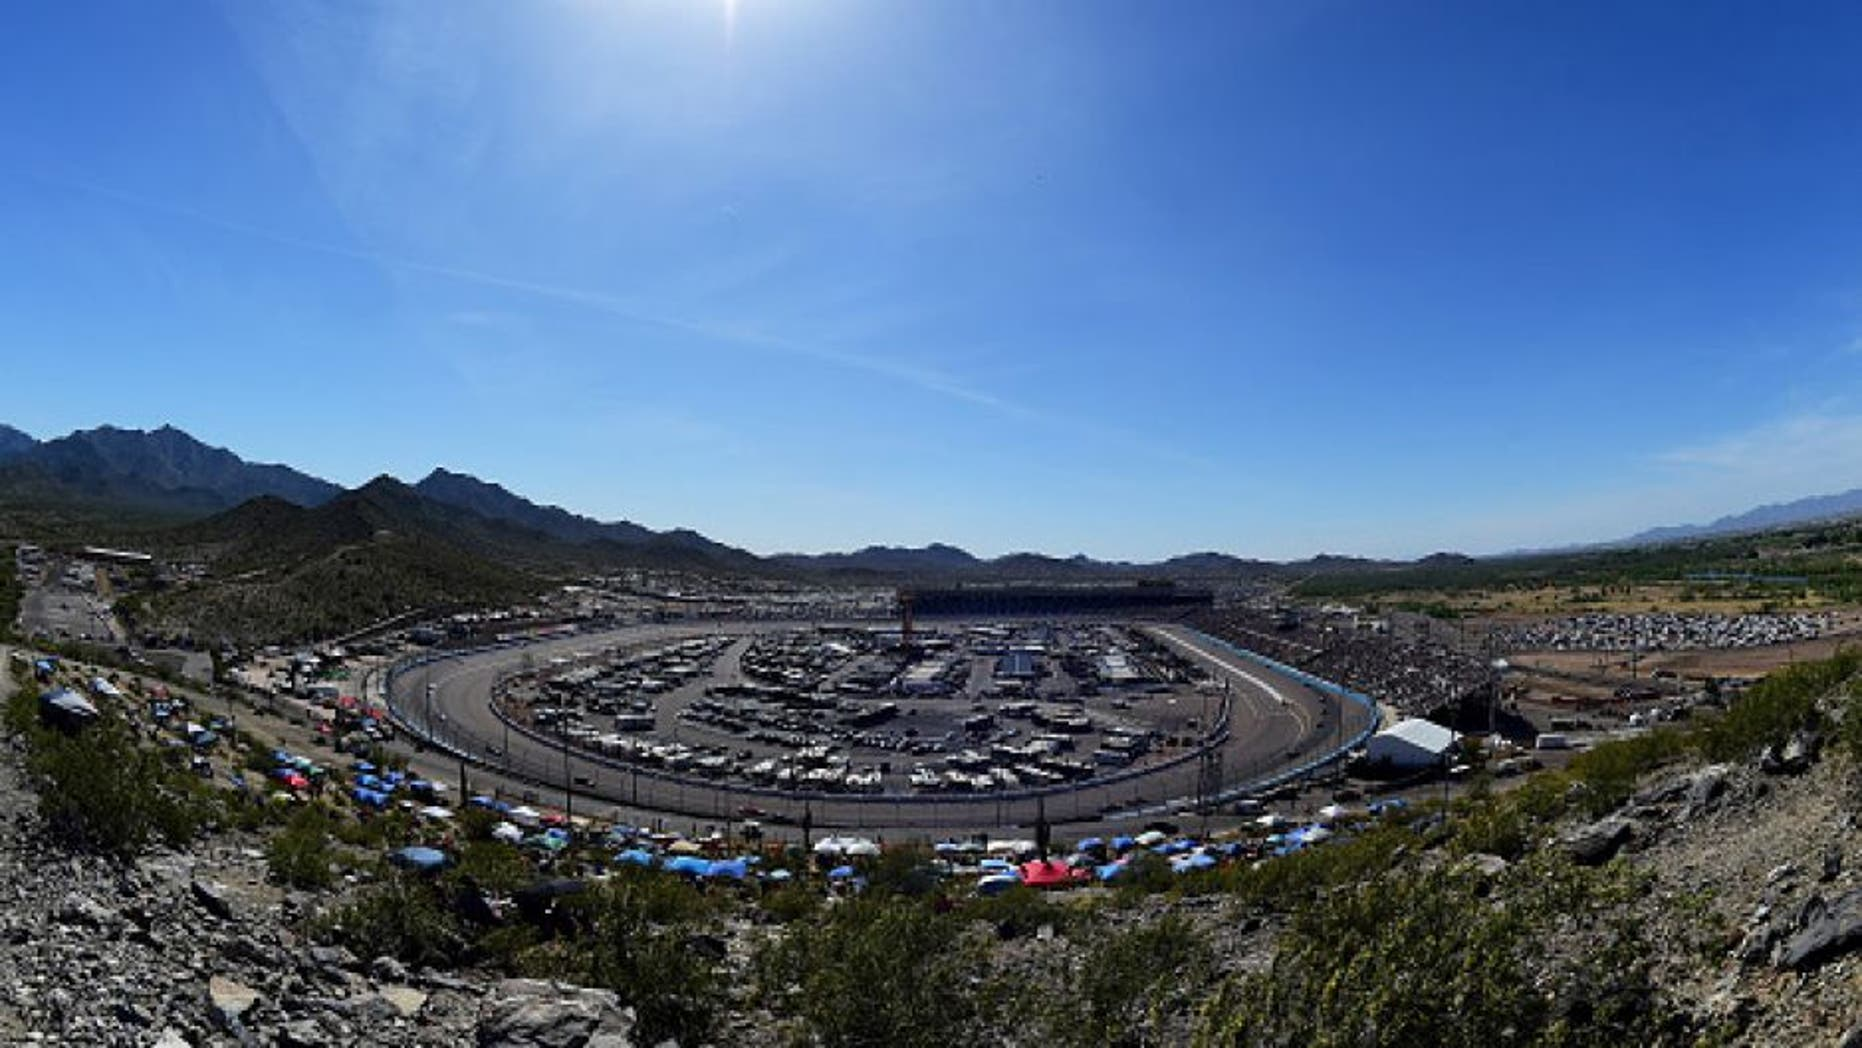 AVONDALE, AZ - MARCH 13: A view of race action during the NASCAR Sprint Cup Series Good Sam 500 at Phoenix International Raceway on March 13, 2016 in Avondale, Arizona. (Photo by Jared C. Tilton/Getty Images)